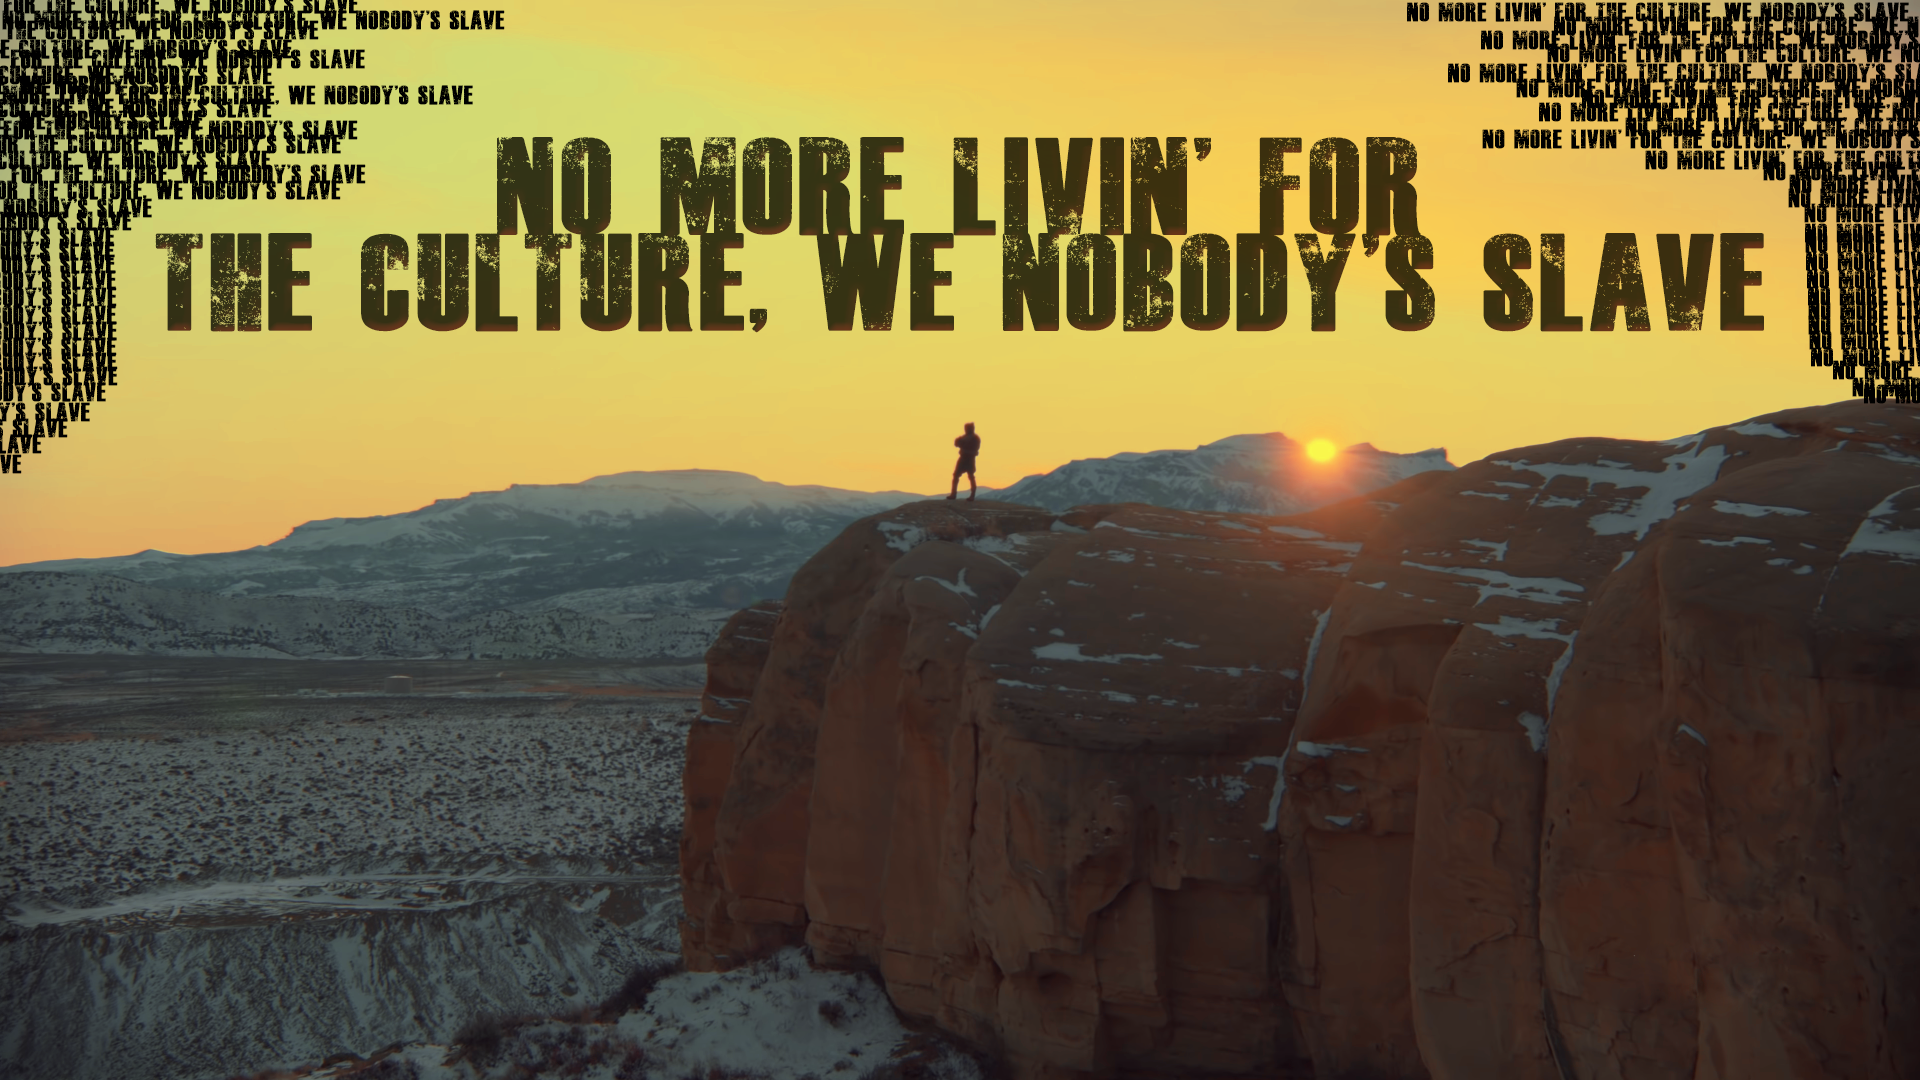 1920x1080 Kanye West Closed On Sunday No More Livin For The Culture We Nobody S S Active Wallpaper Desktop Background Images Computer Desktop Backgrounds